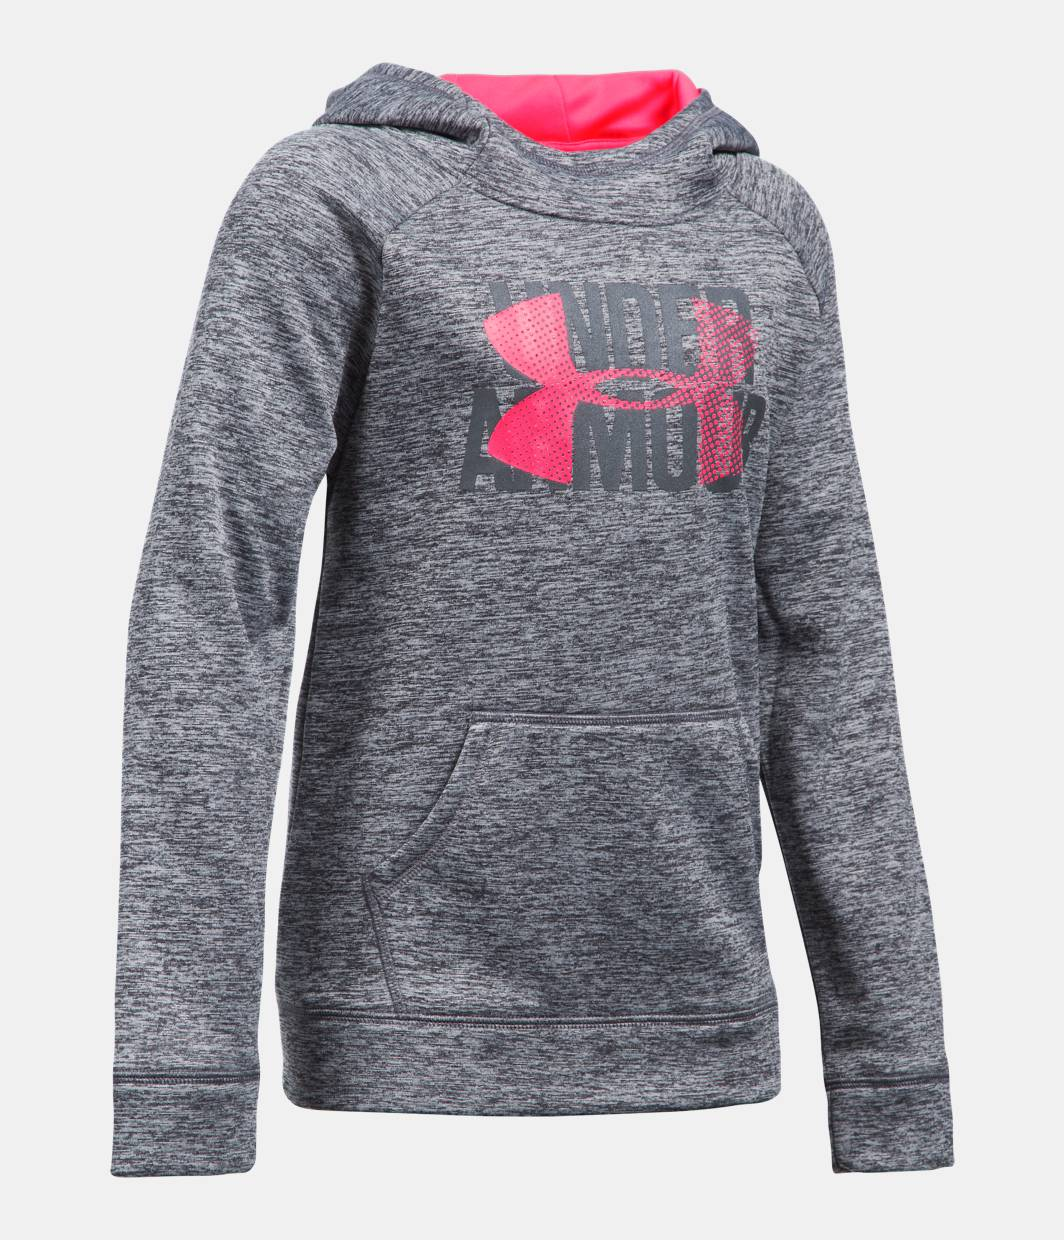 Girls' Kids (Size 8 ) Hoodies & Sweatshirts | Under Armour US